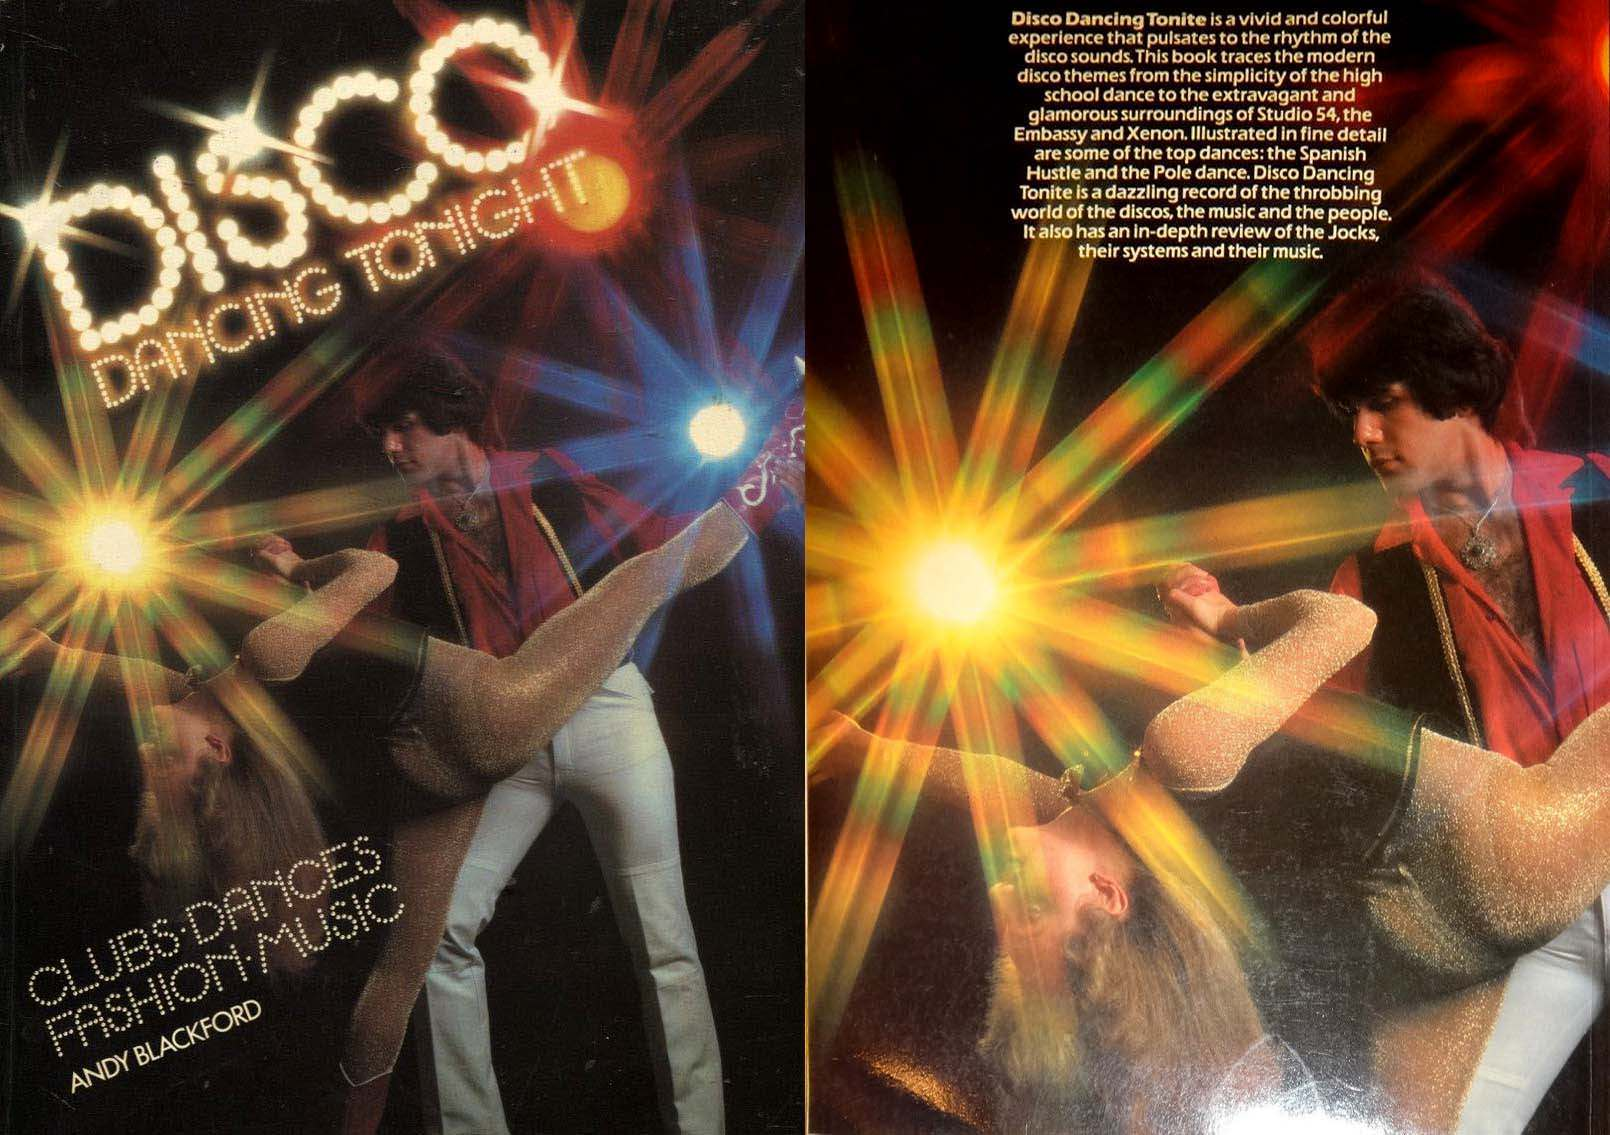 Disco Dancing Tonite by Andy Blackford (1979 )